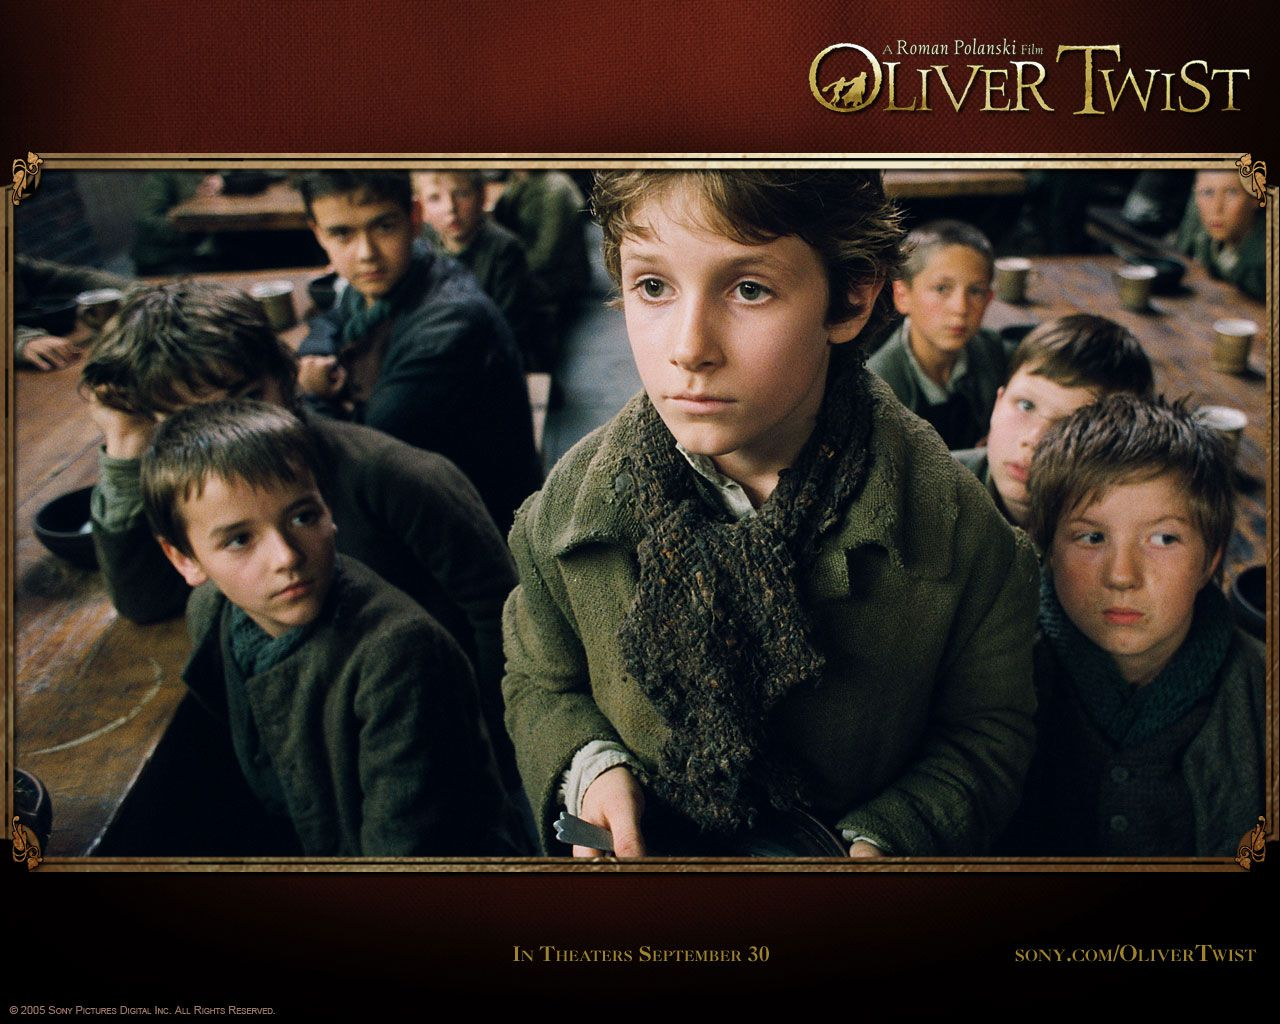 best images about oliver twist 17 best images about oliver twist10084 10084 10084 10084 10084 10084 10084 10084 10084 10084 10084 10084 10084 10084 10084 10084 10084 on oliver twist boys and artful dodger